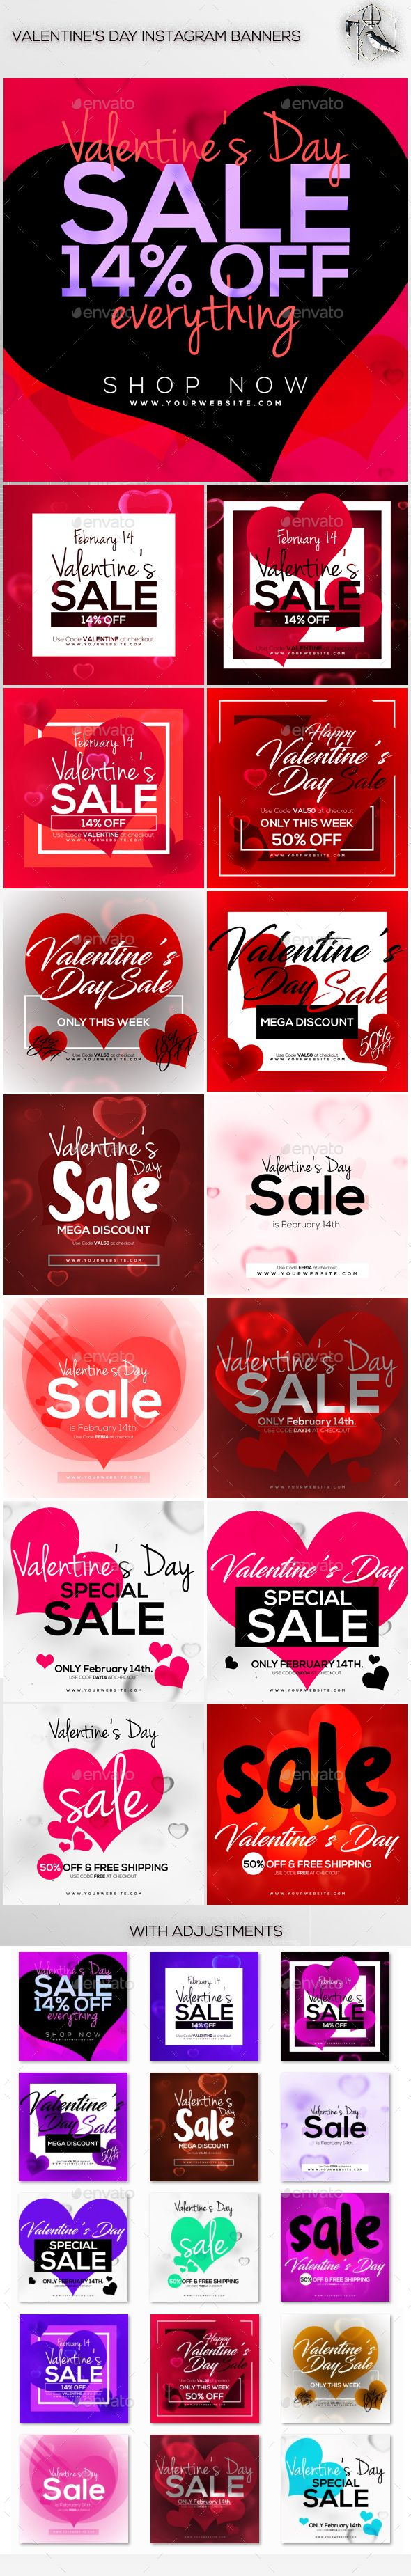 15 Valentine's Day Instagram Banners Template PSD #ads